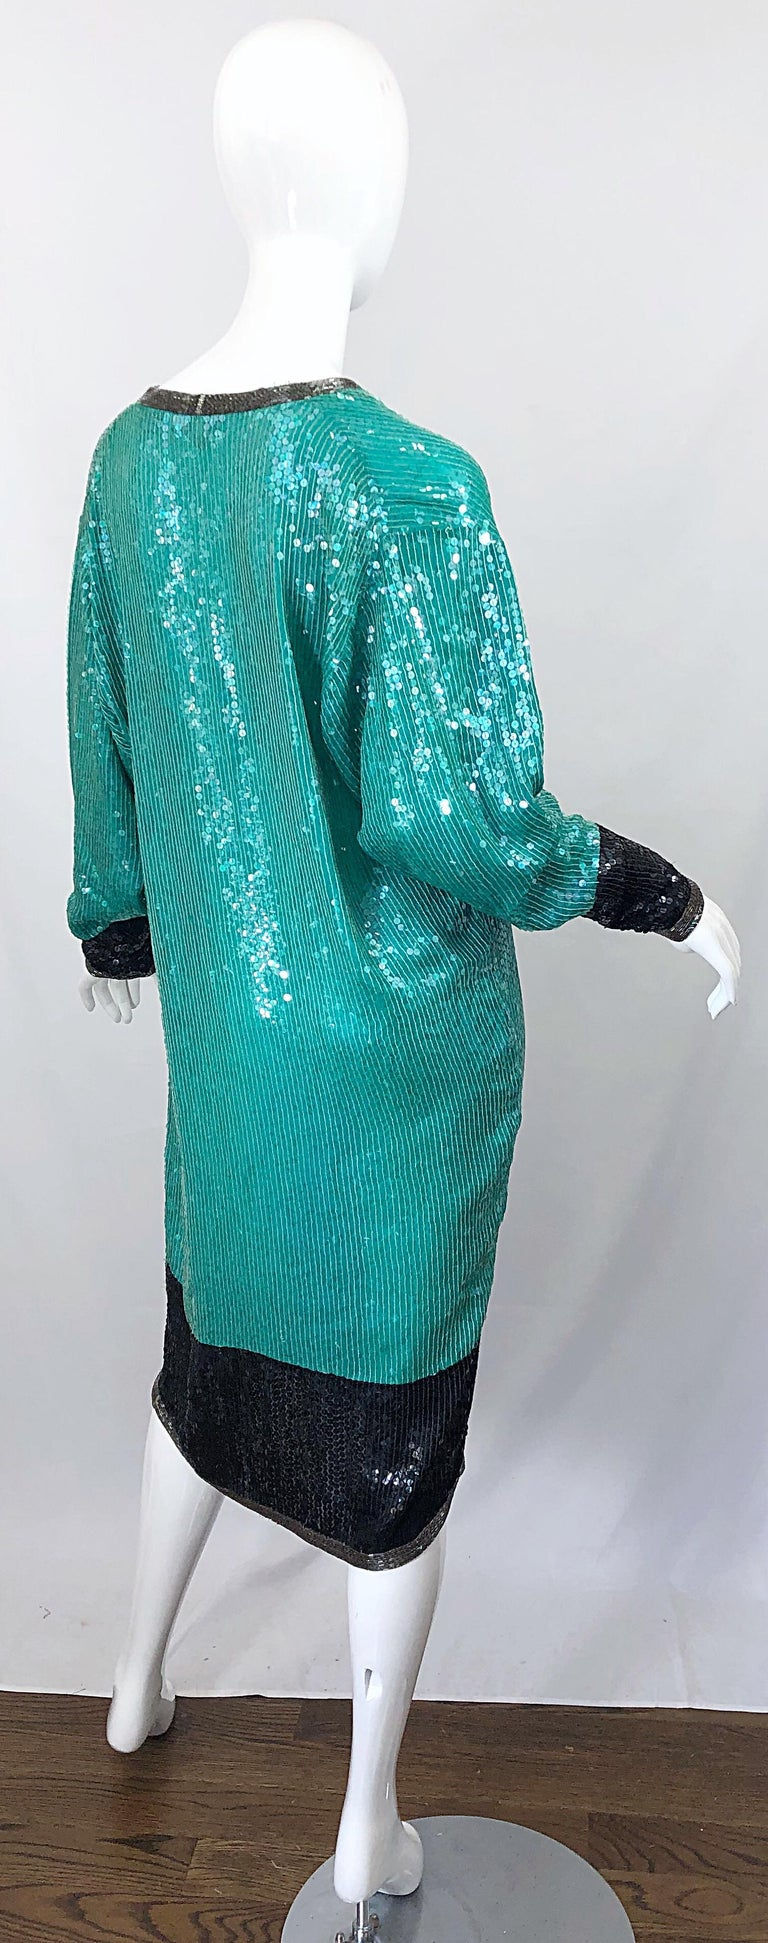 Women's 1970s HALSTON Teal Blue / Green + Black Sequined Beaded Dolman Sleeve Silk Dress For Sale